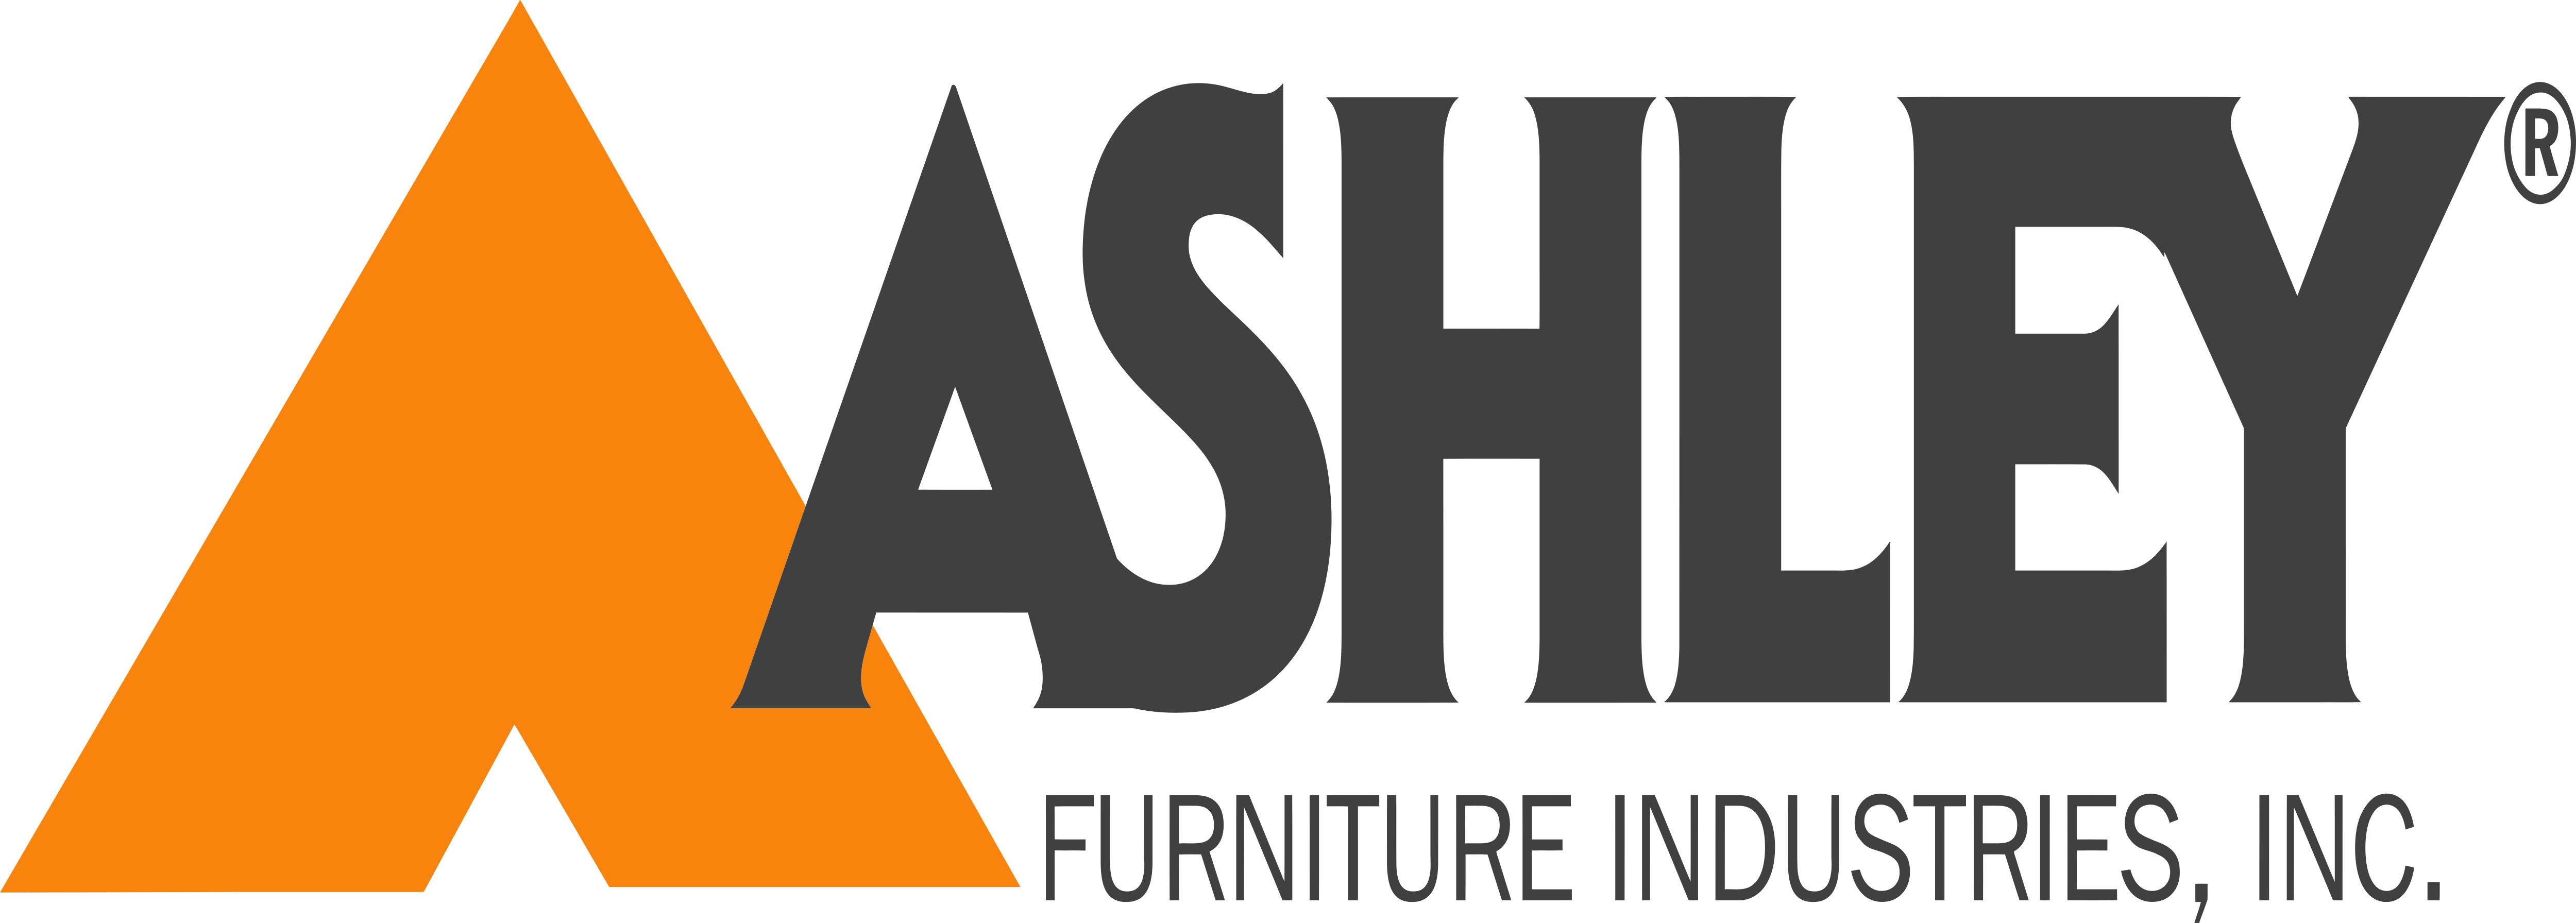 Ashley furniture logo clipart jpg library download Ashley Logo - LogoDix jpg library download